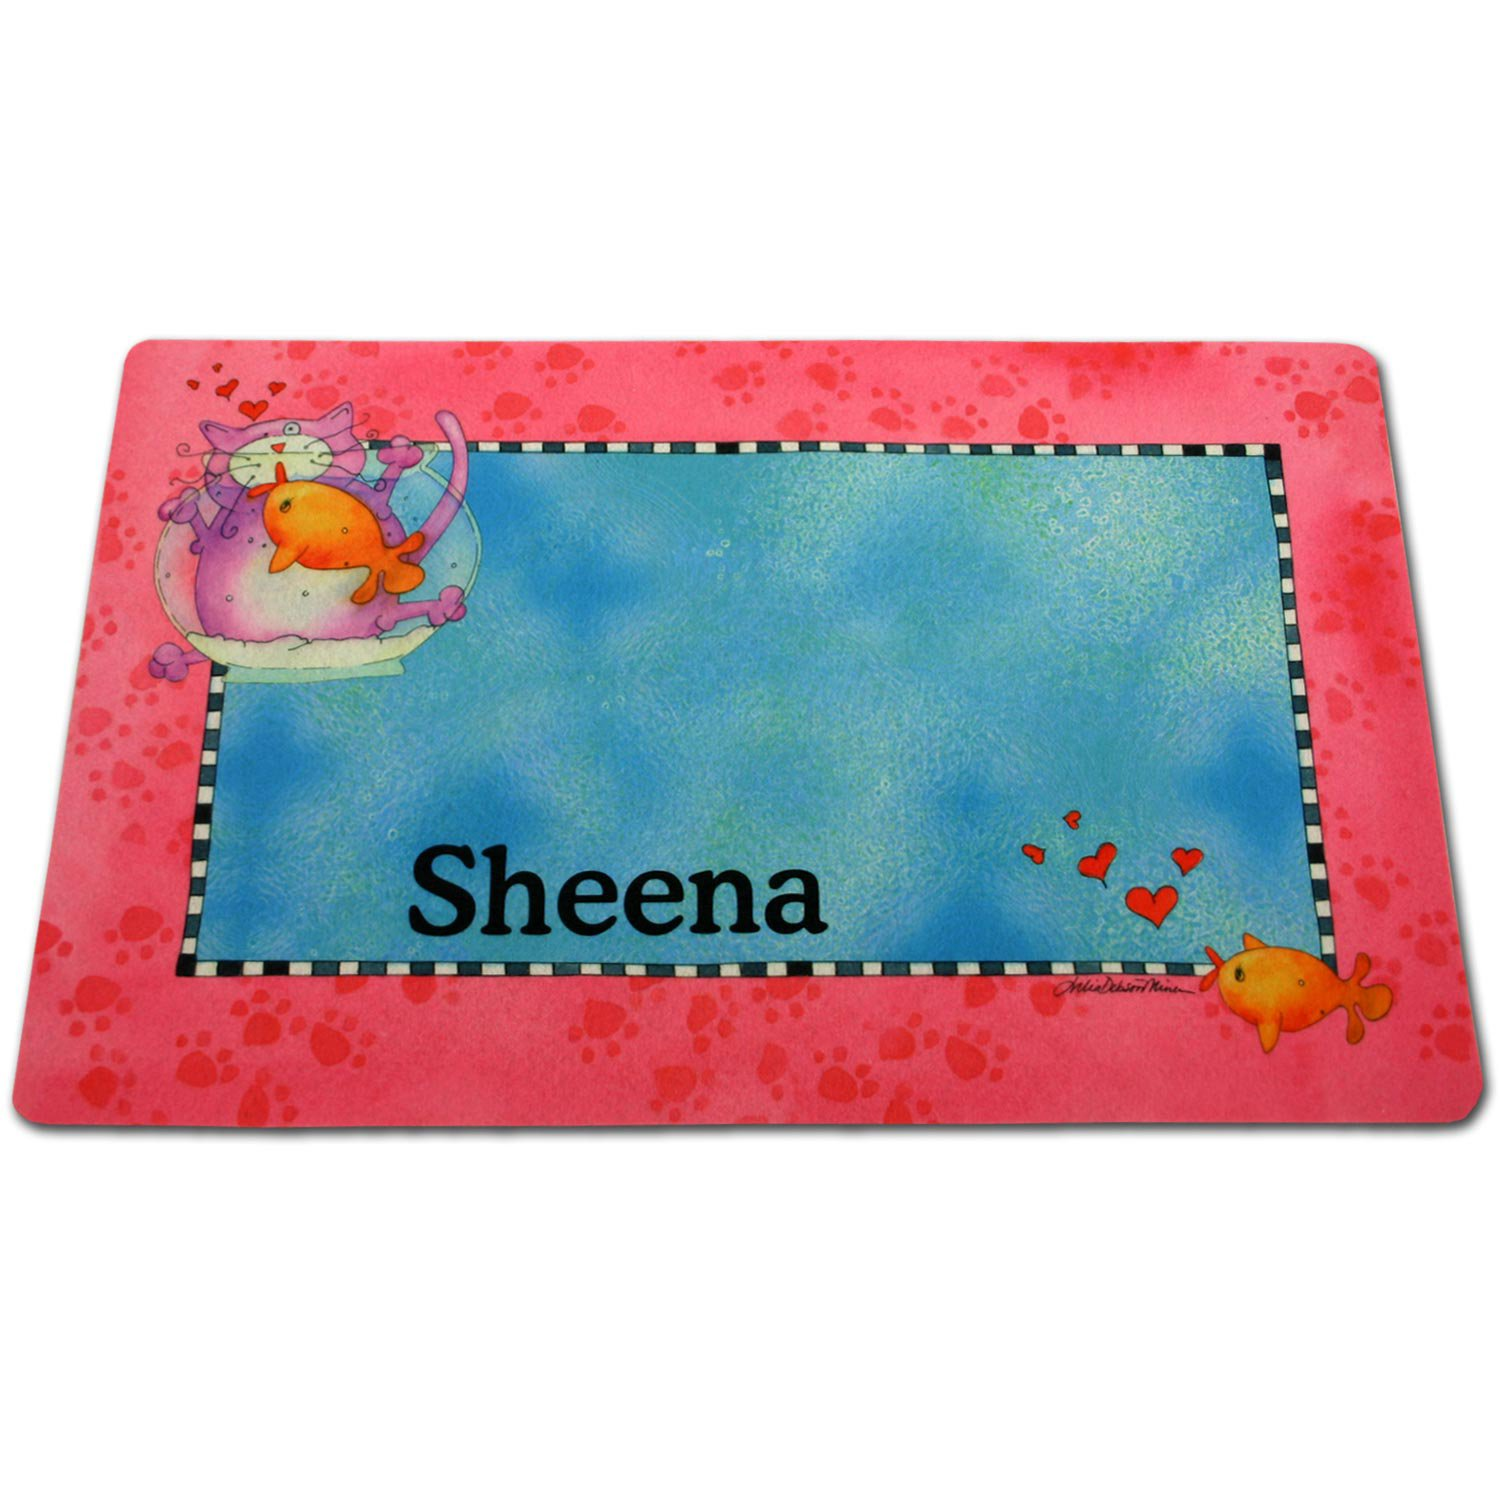 Drymate Pink Border Fish Bowl Personalized Pet Placemat